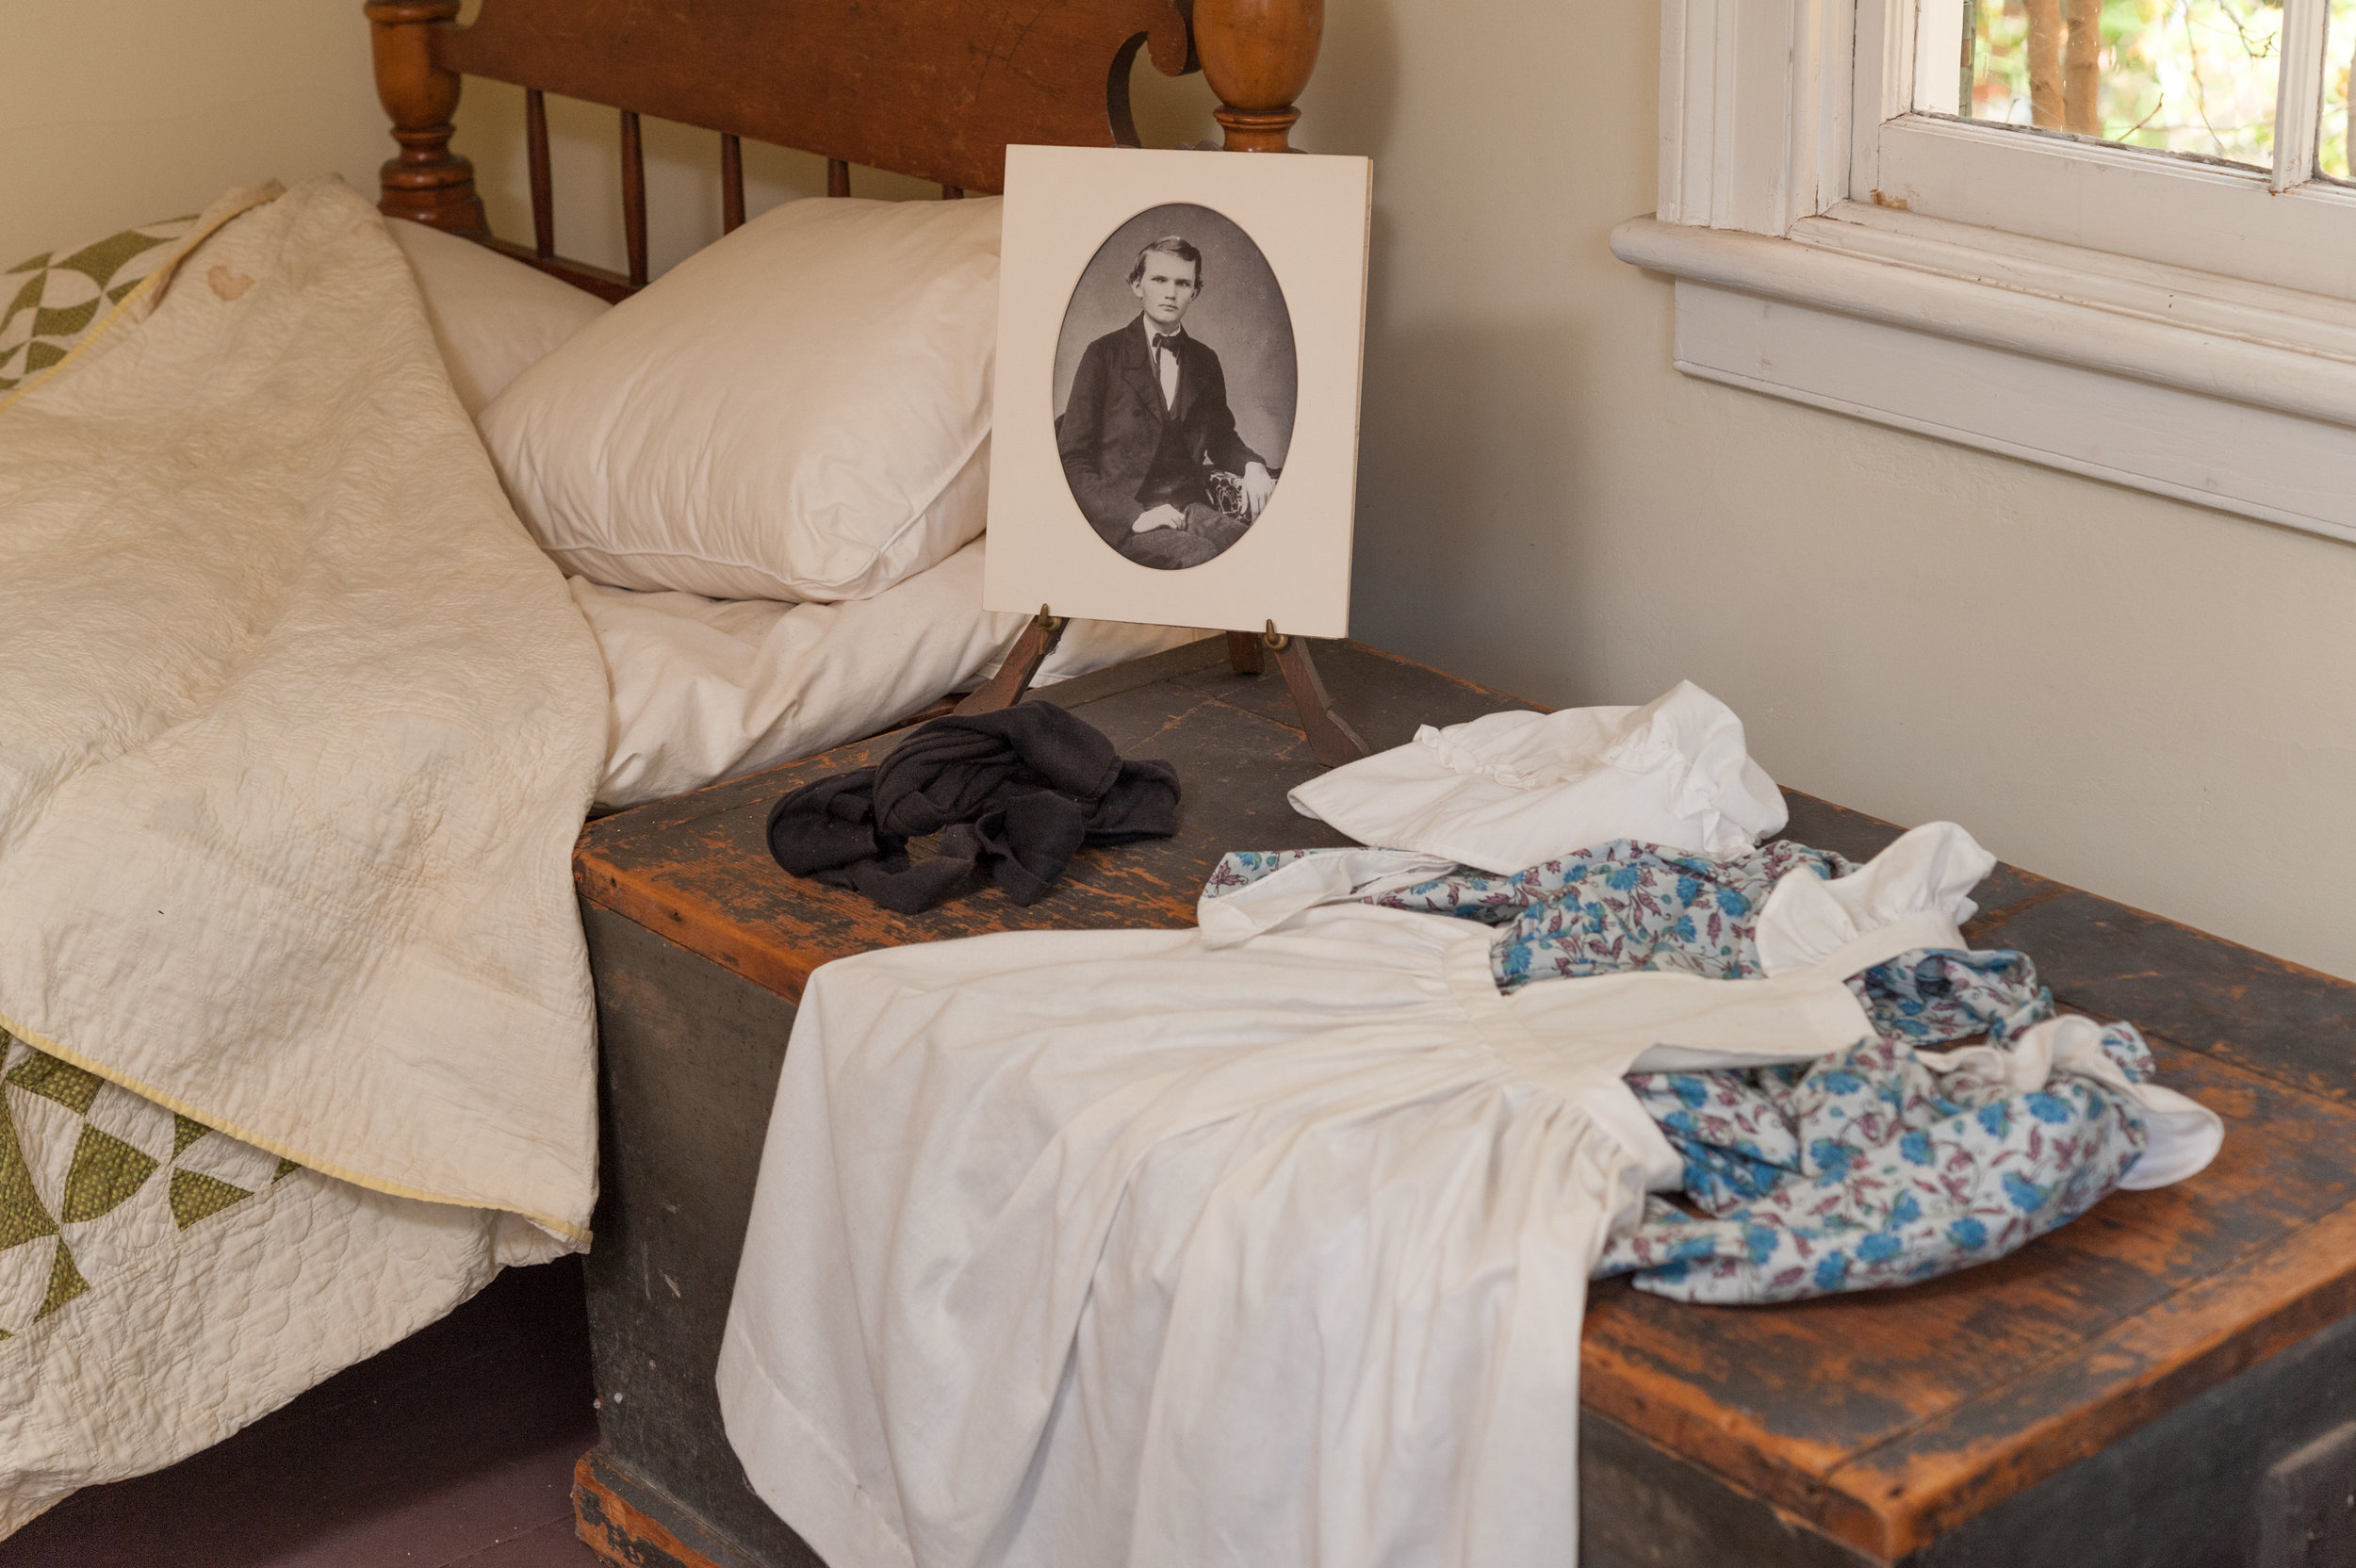 On the cedar chest is a young girls' dress and pinafore apron a well as a picture of one of the Hyatt boys.